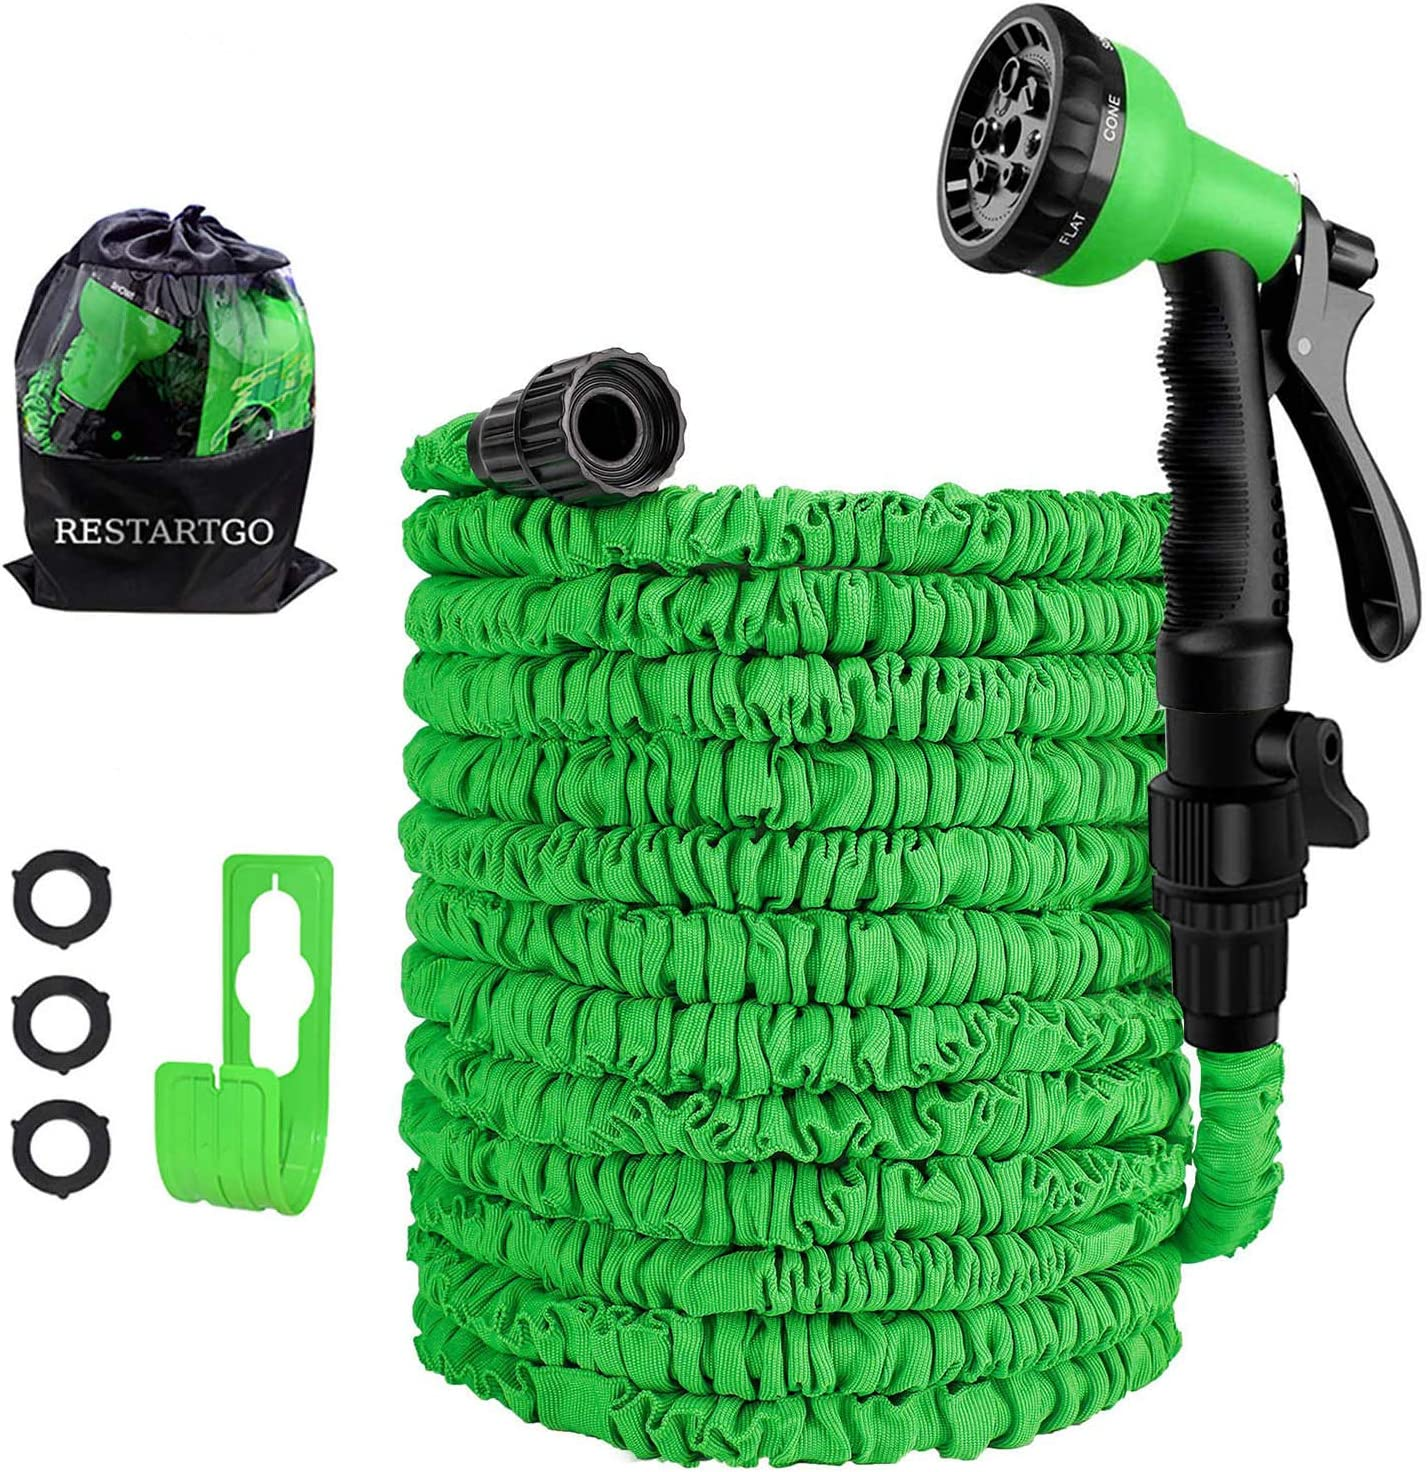 "100FT Garden Hose Reel Expandable 3 Times TPE Super-Strength High Pressure Flexible Water Hose,8-Function High-Pressure Spray Nozzle with 3/4"" Solid Fittings Comes with Free Hose Holder"